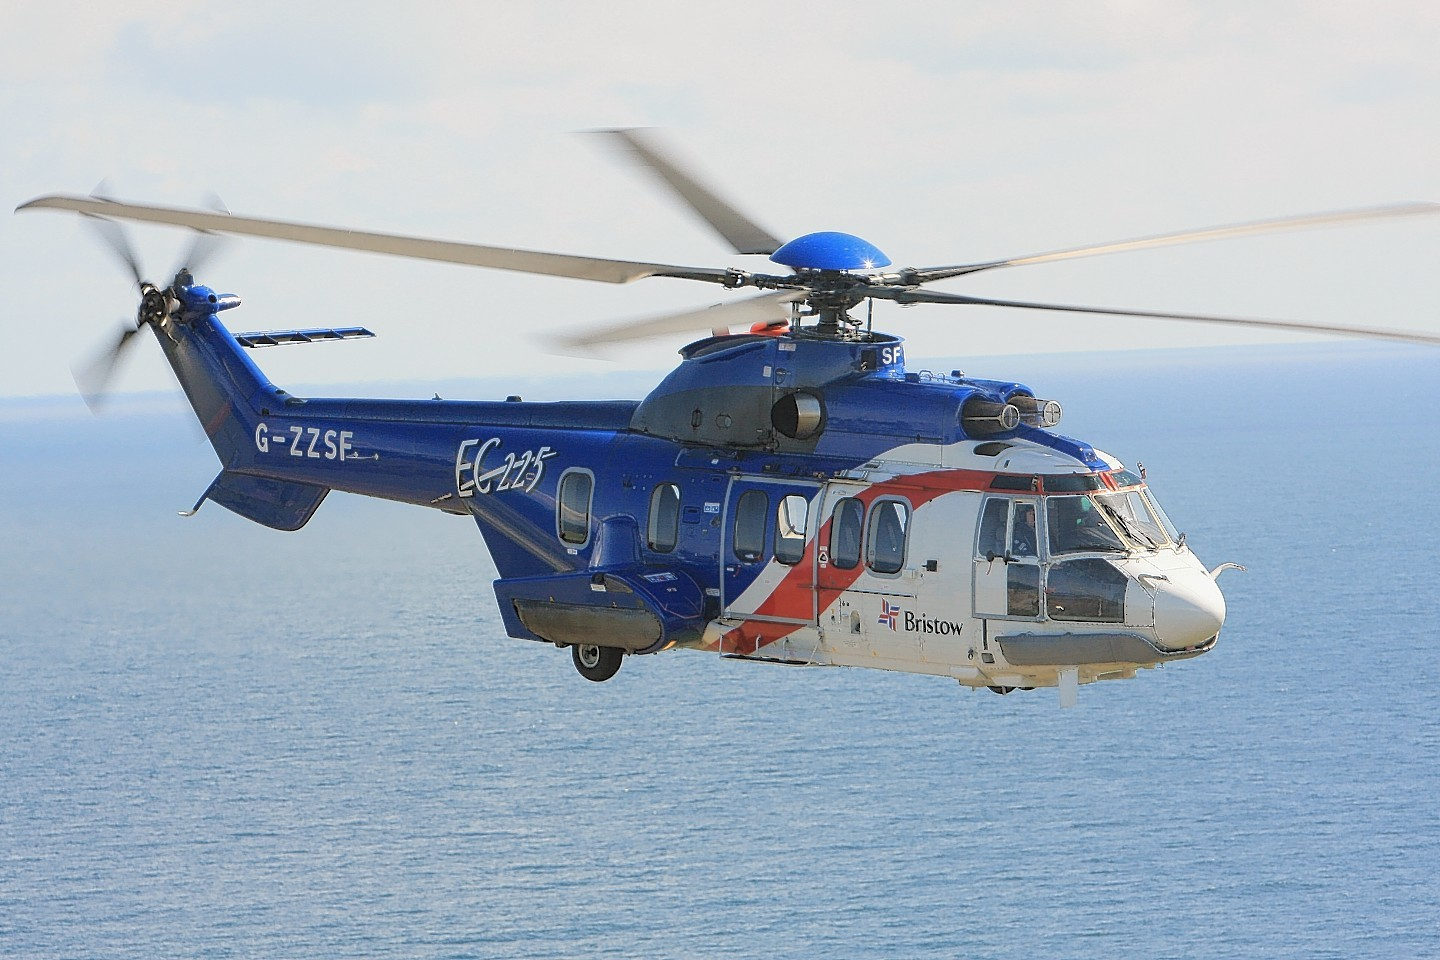 A Bristow helicopter has returned safely to shore